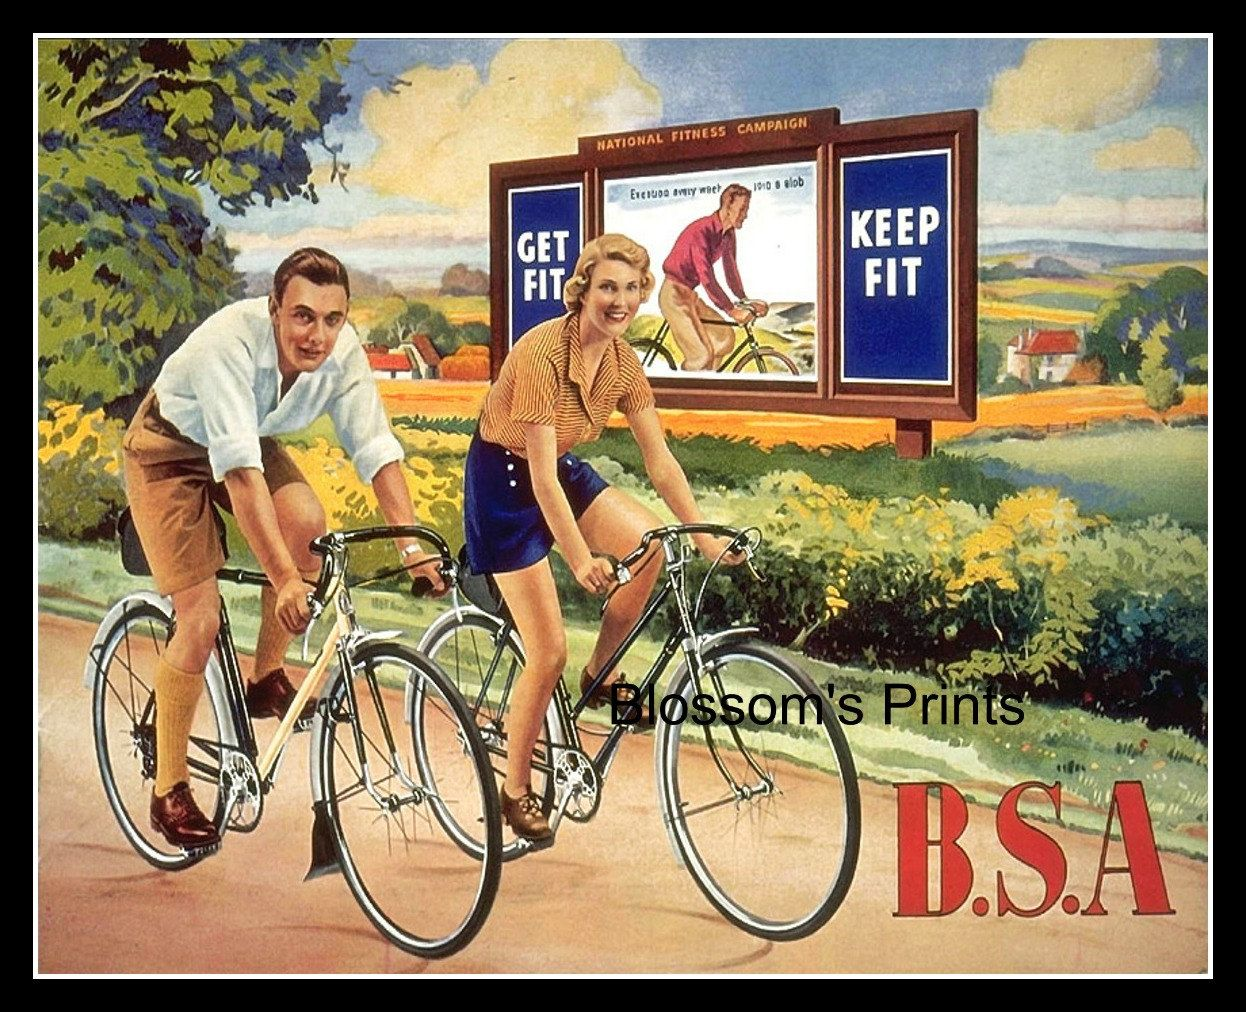 BSA bicycling advertising by Blossomsvintageprint on Etsy